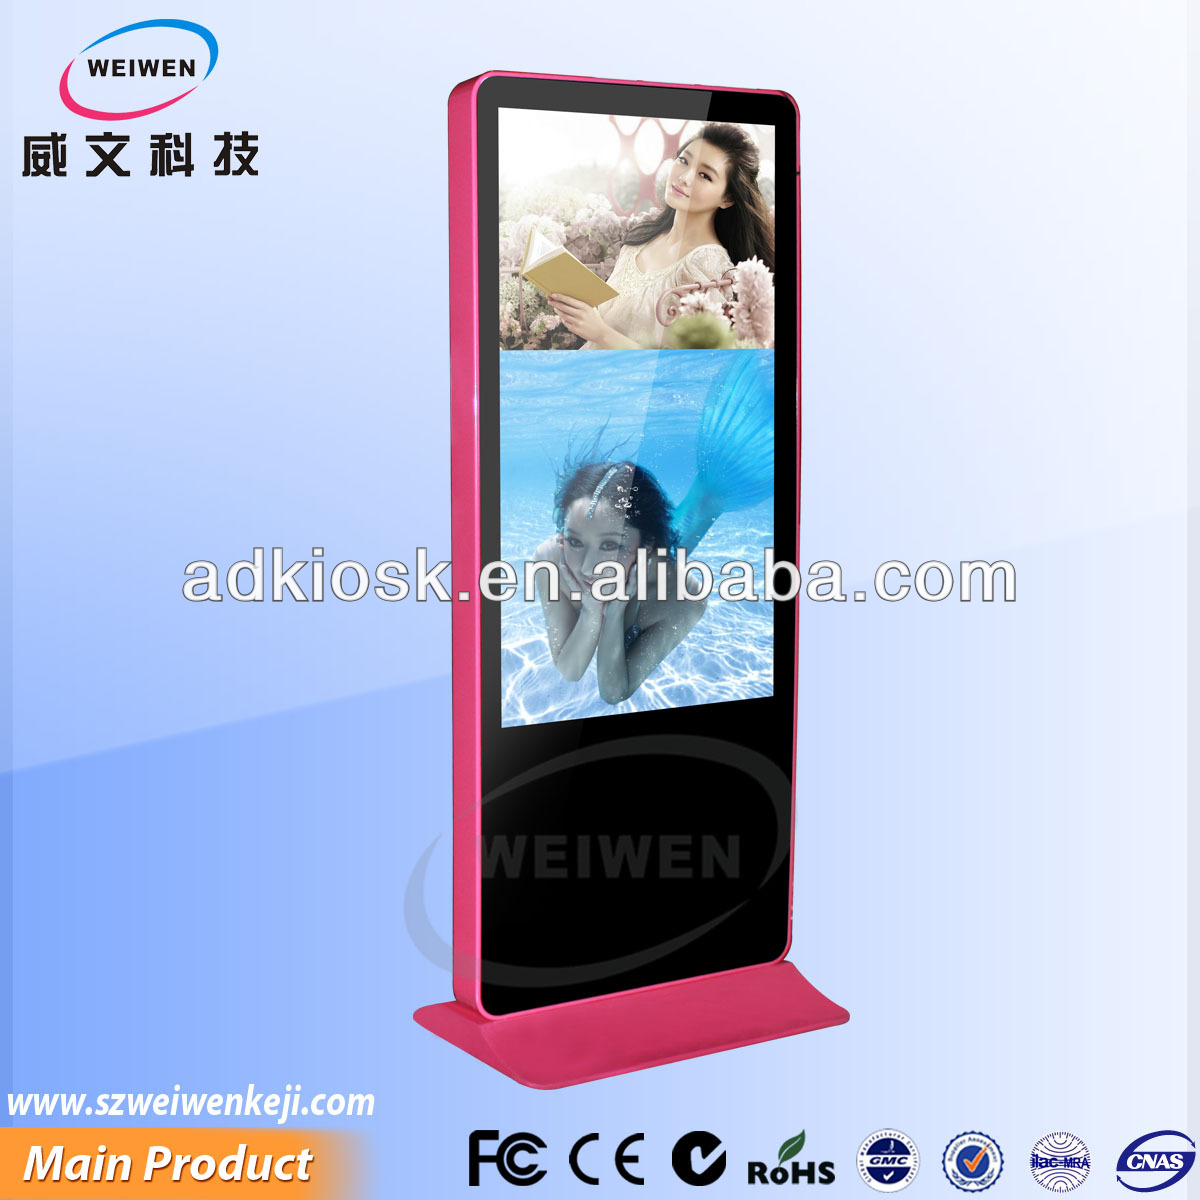 new 2014! 46 inch double touch screen free photos free sex lcd kiosk touch screen